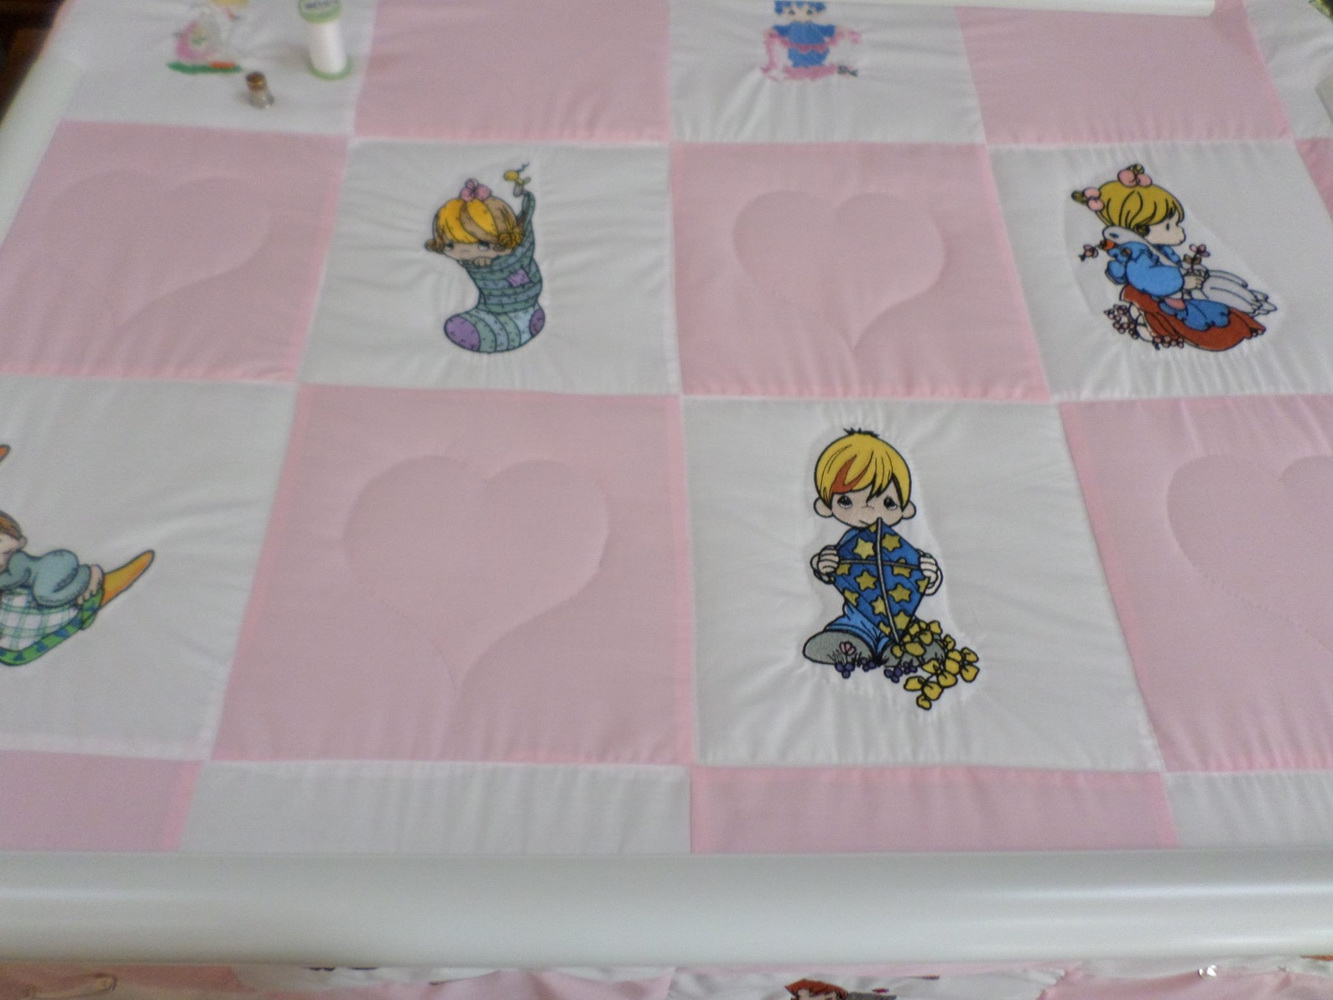 Precious Moments embroidery designs on quilt